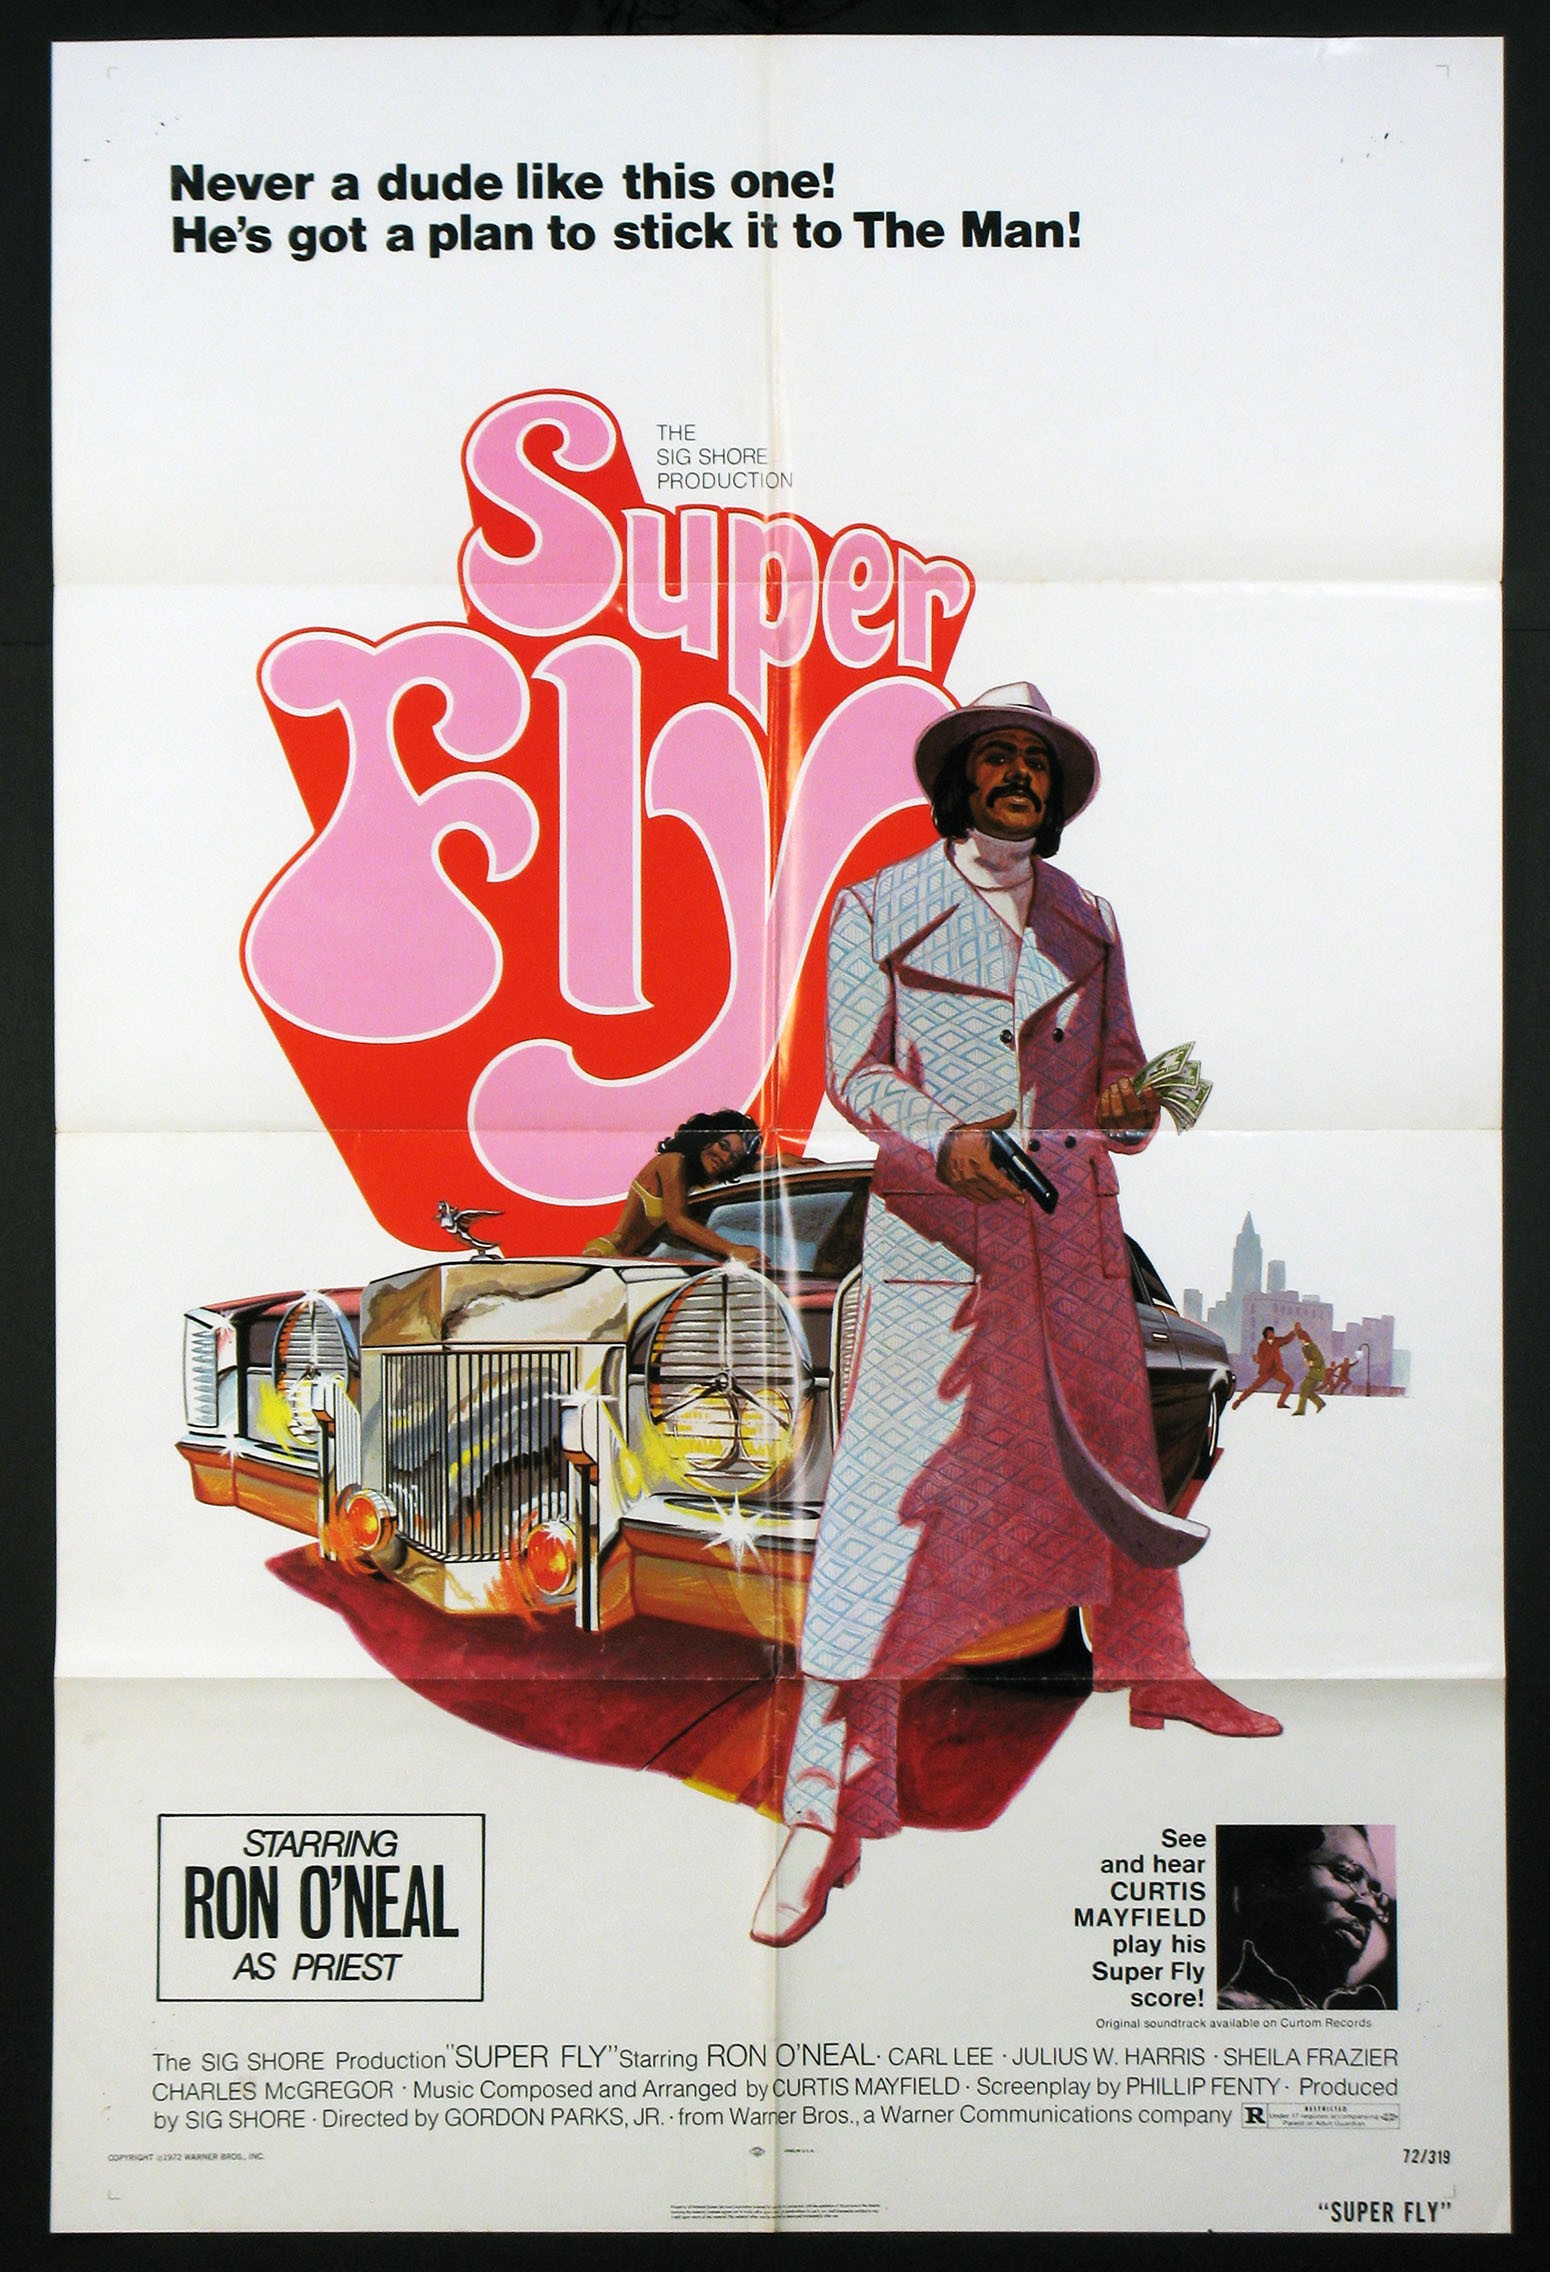 SUPERFLY (Super Fly) @ FilmPosters.com